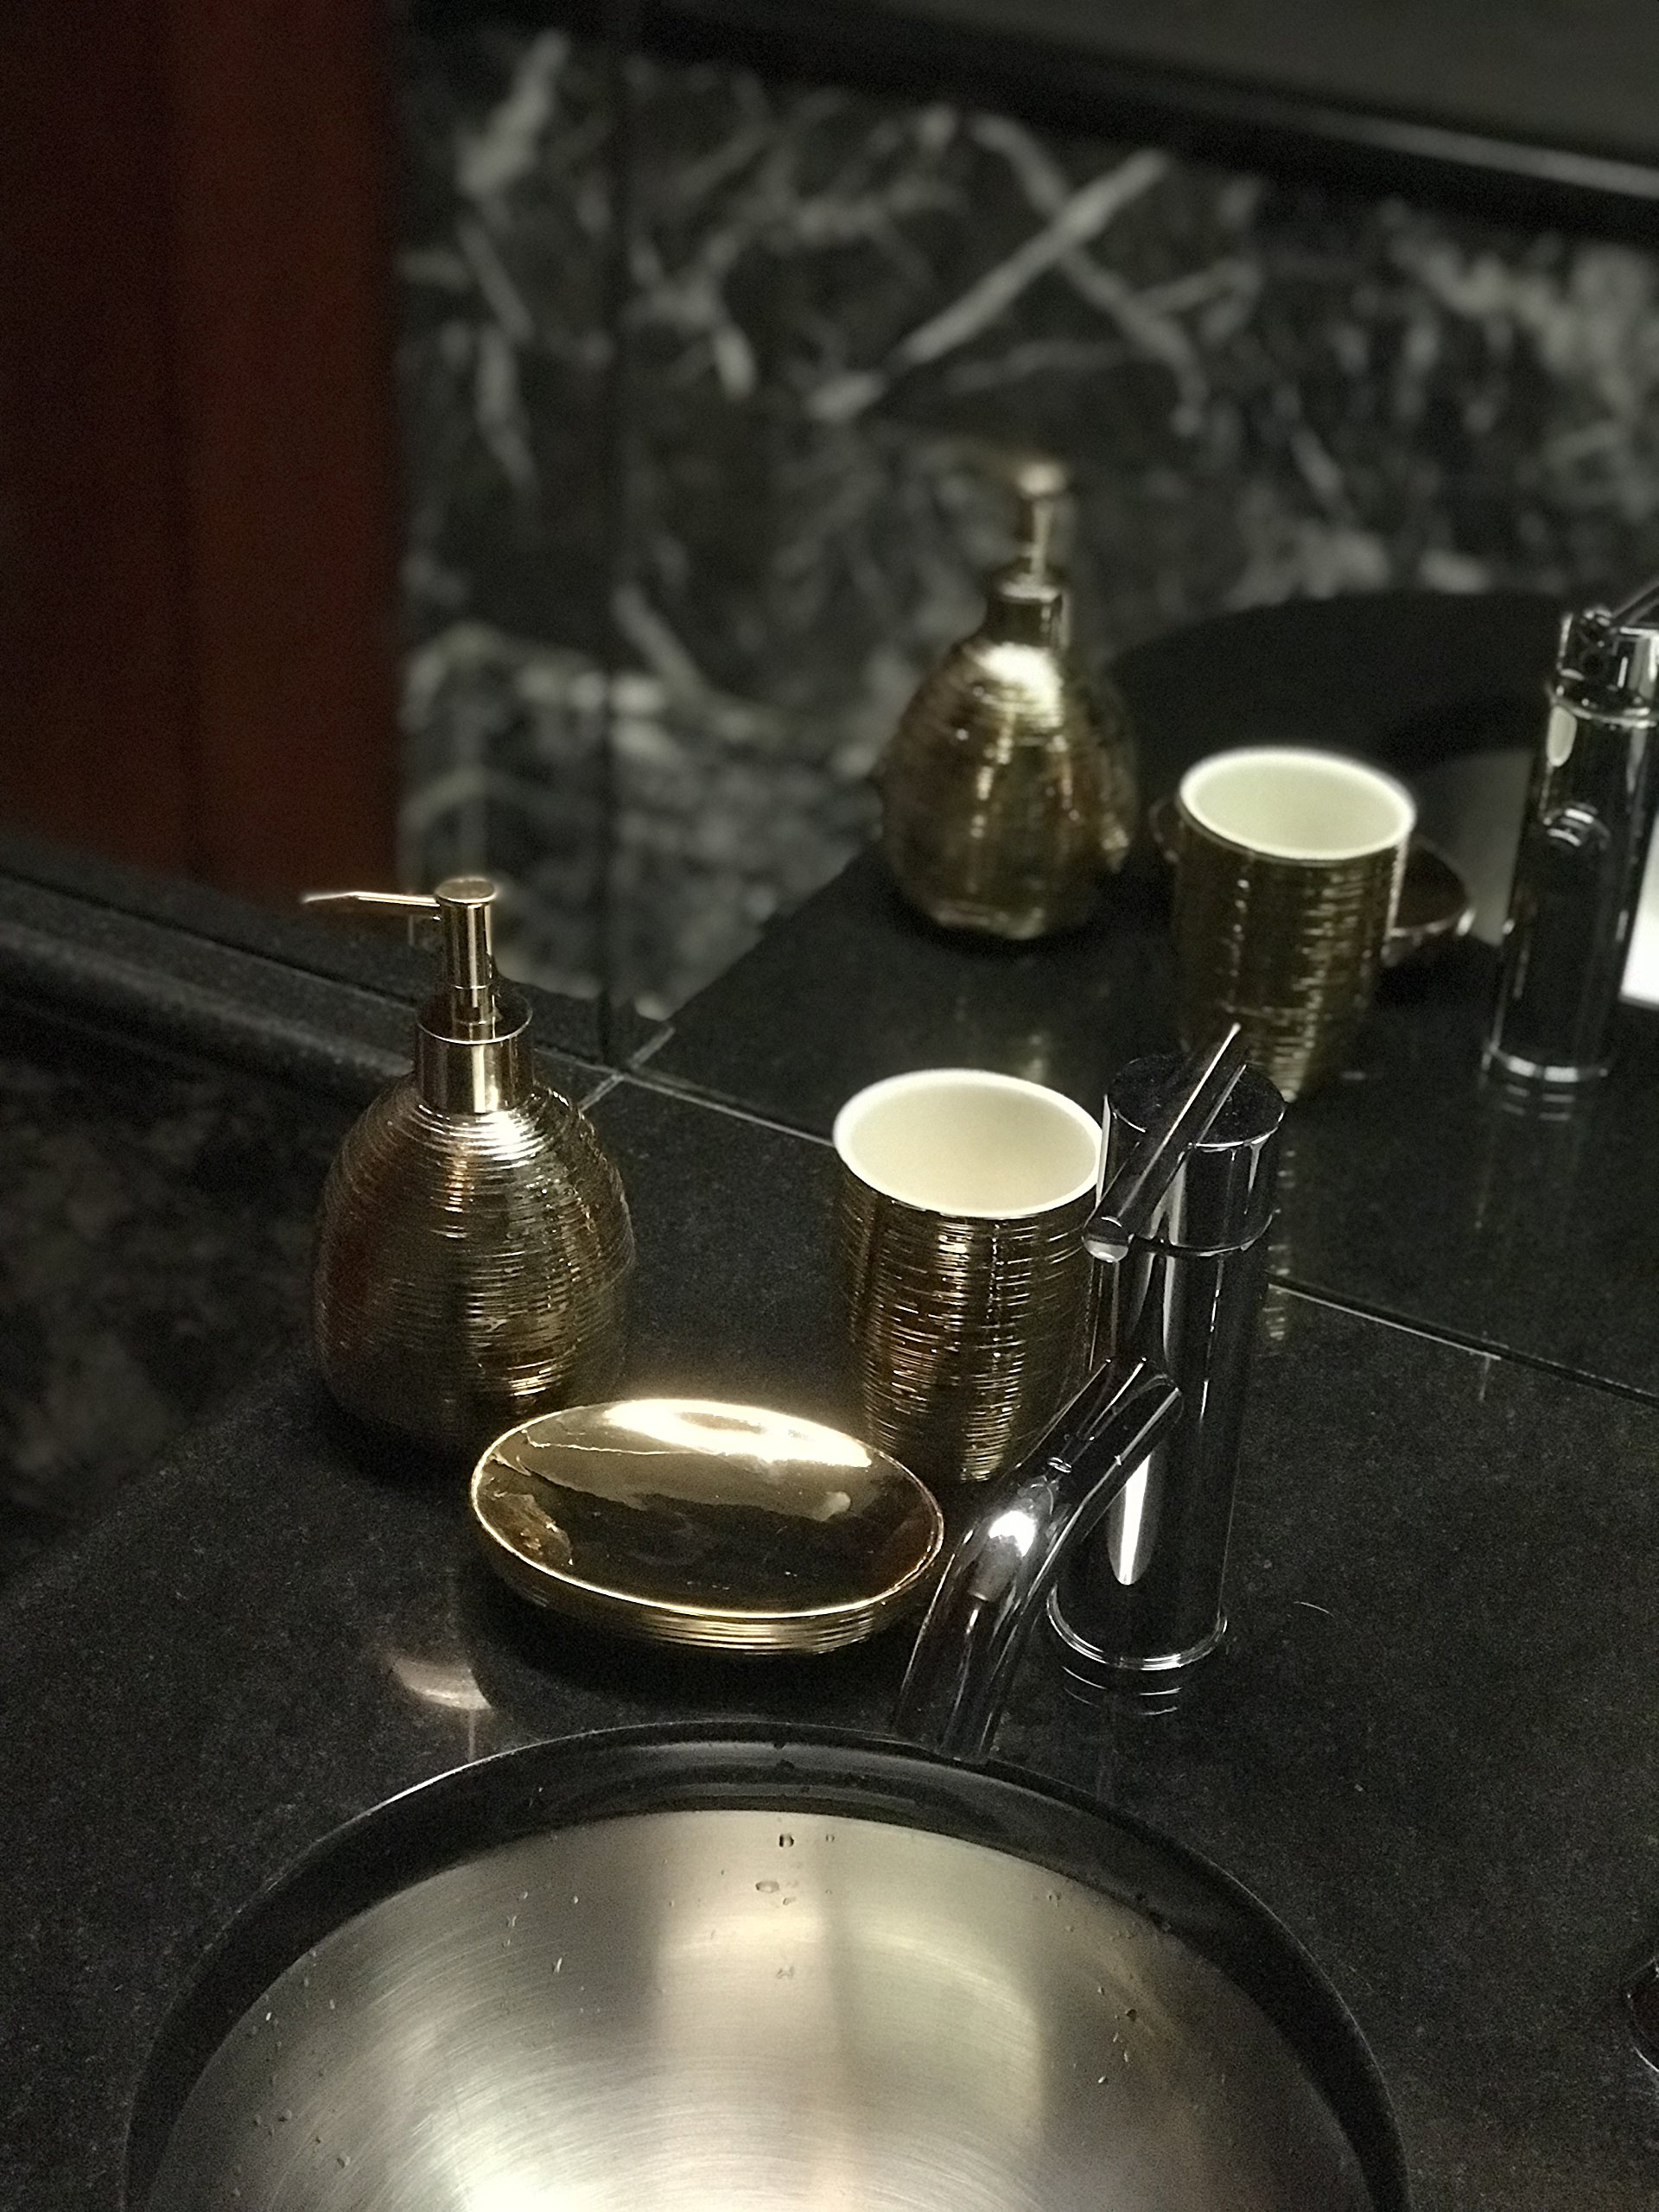 M&R Blvd. Golden Ceramic Bathroom Accessory Set. 3 Piece Bath Set Featuring Soap/Lotion Dispenser Pump, Toothbrush Holder/Tumbler And Soap Dish Made Of Golden Mosaic Ceramic.